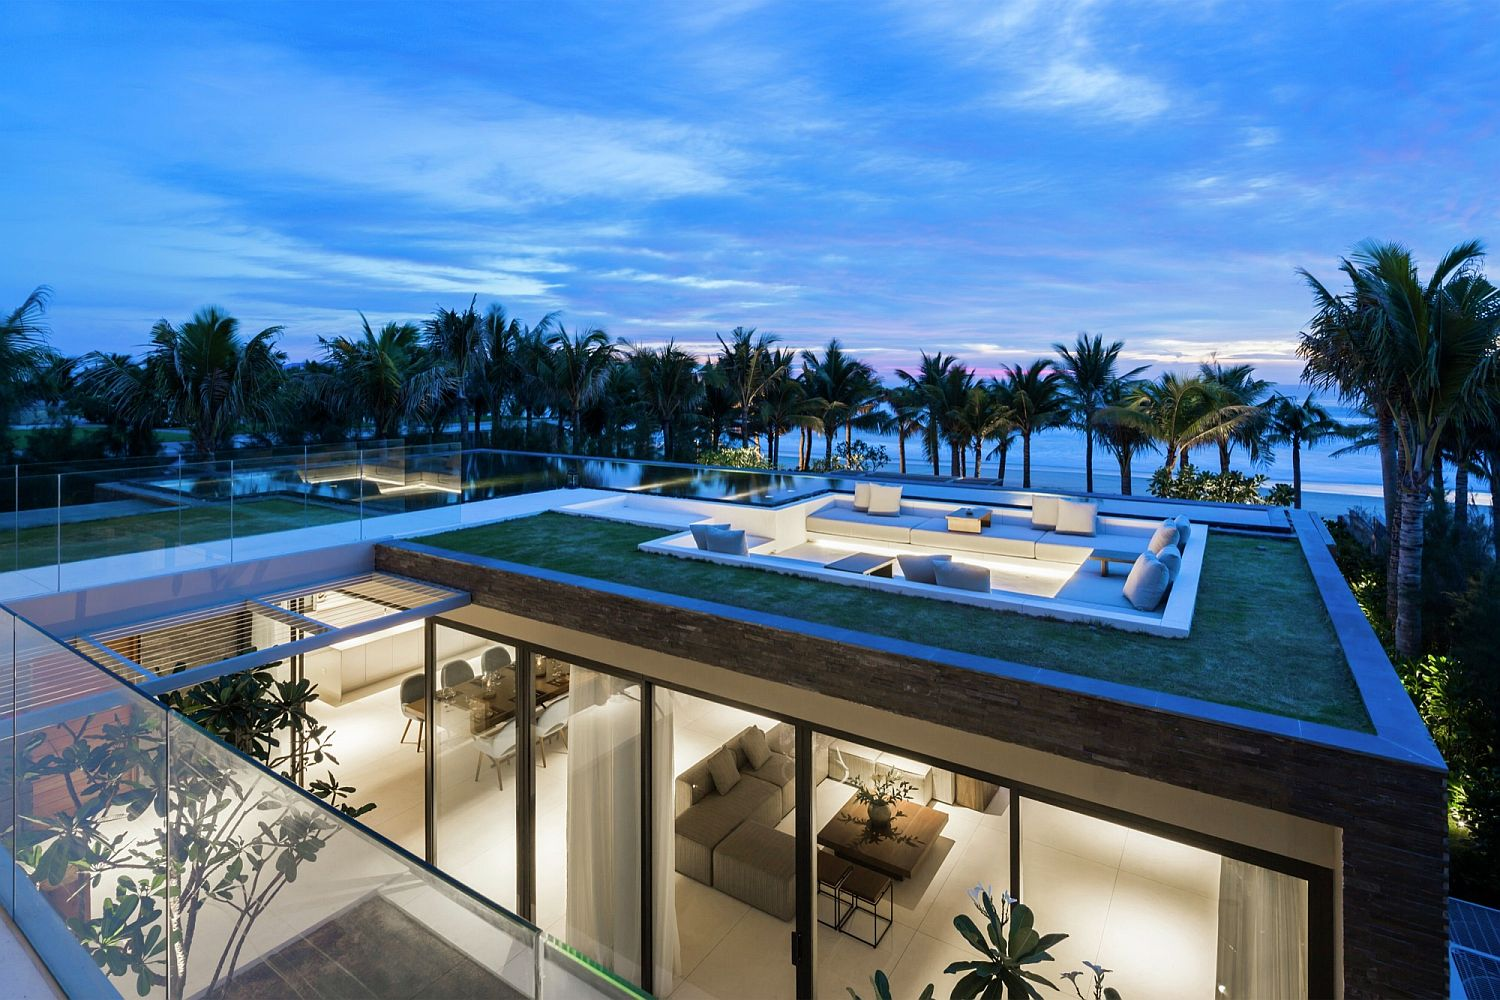 Naman Villa with its majestic pools and breathtaking gardens offers a world in itself